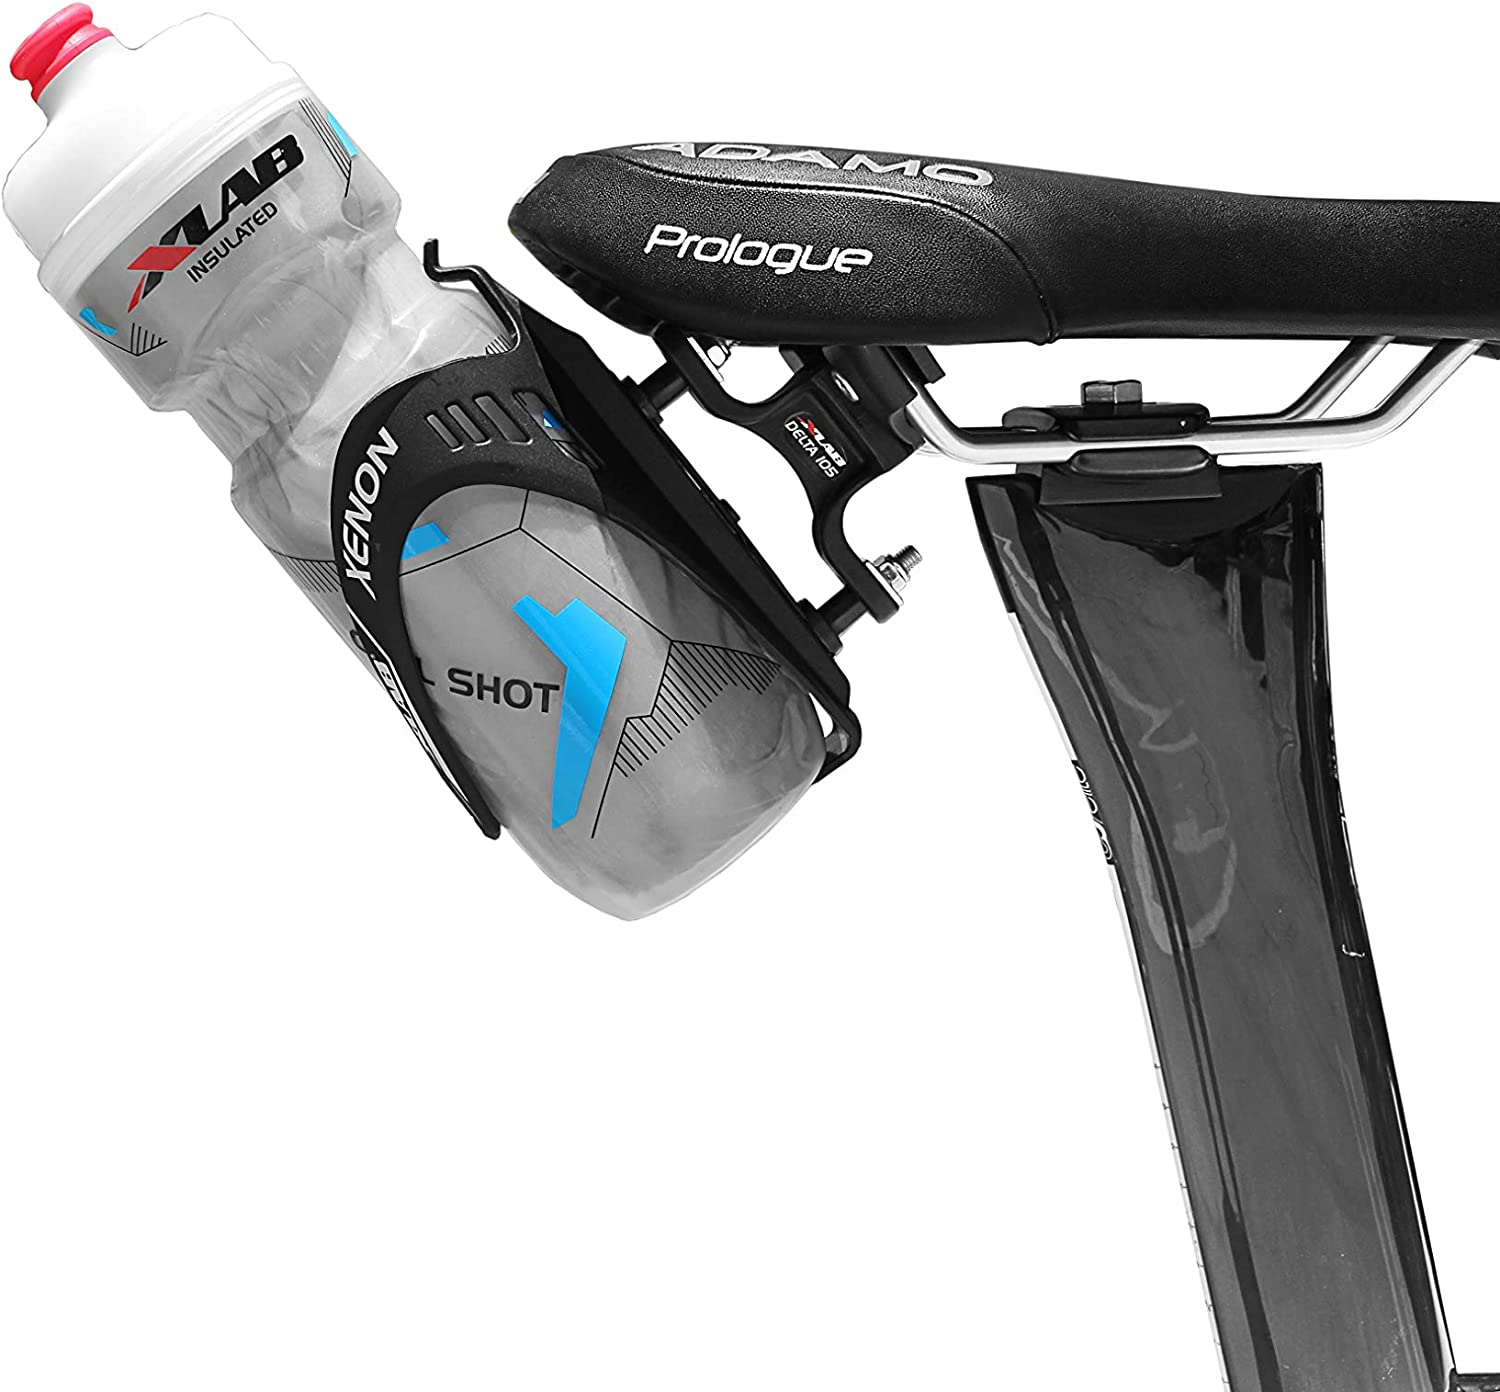 Water bottle cage mounted behind the saddle